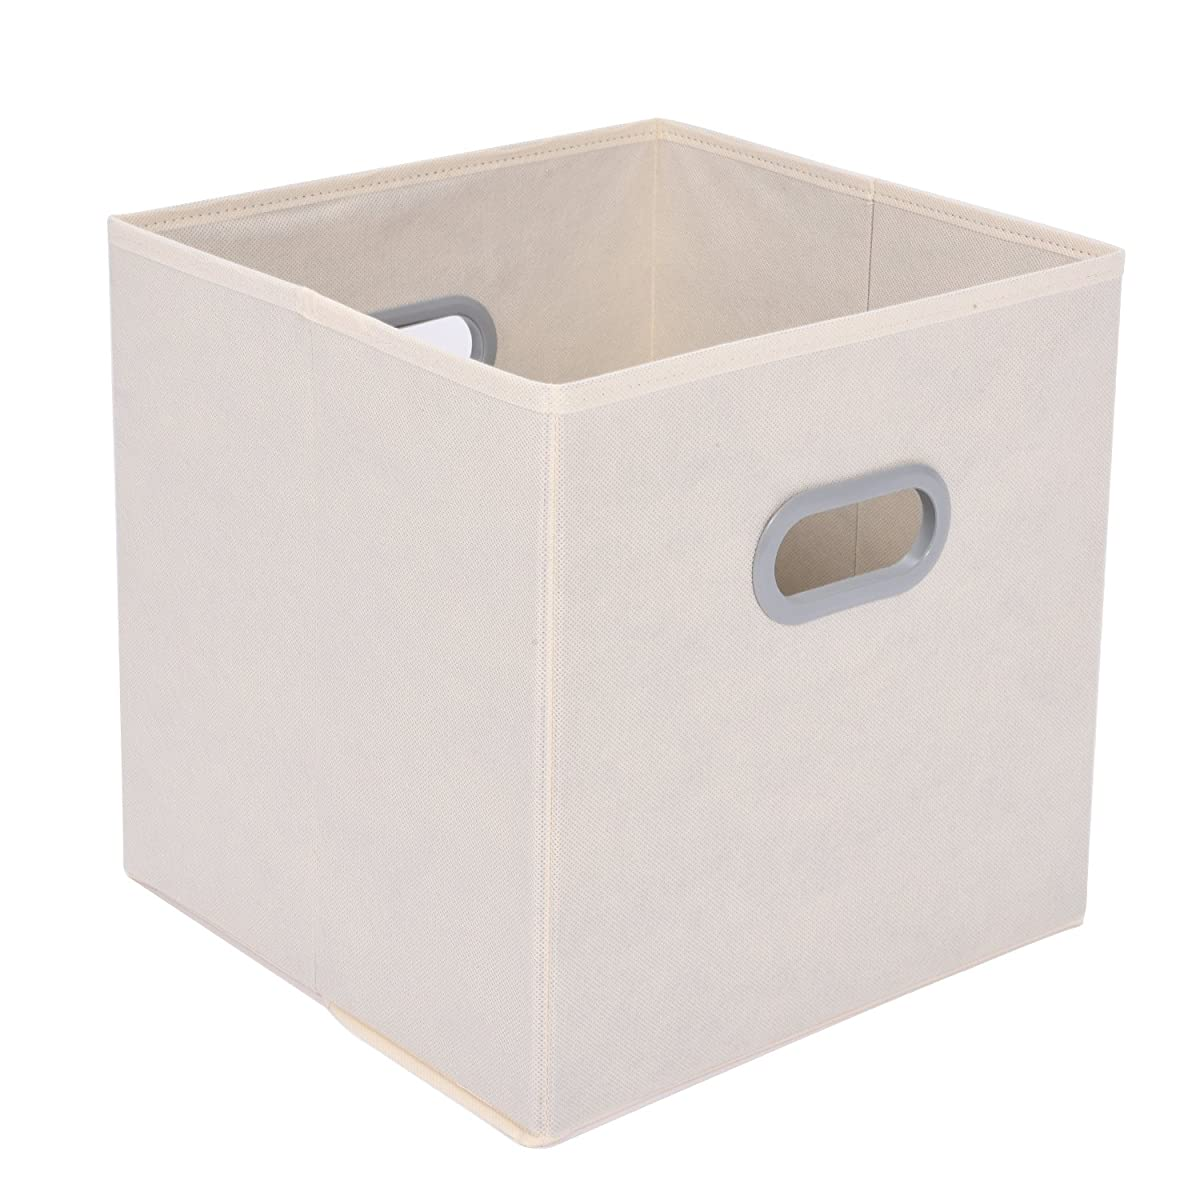 MaidMAX Cloth Storage Bins Cubes Baskets Containers with Dual Plastic Handles for Home Closet Bedroom Drawers Organizers, Flodable, Beige, Set of 6